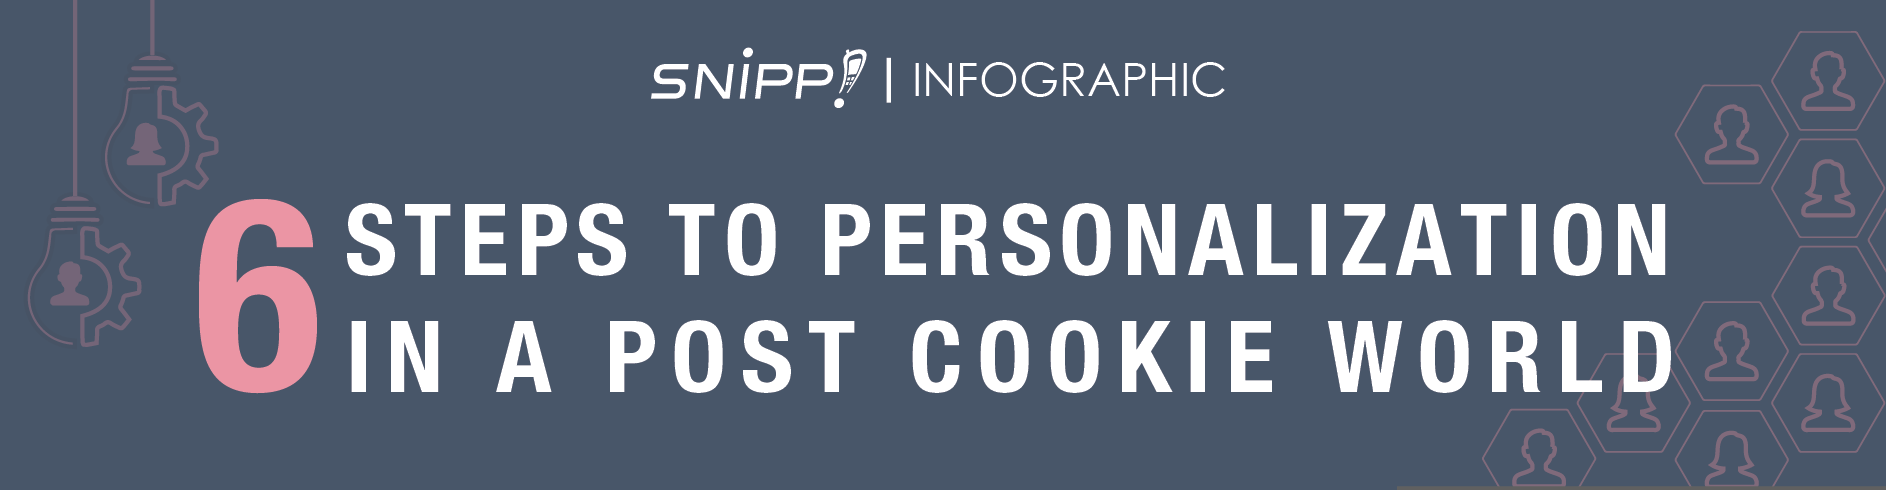 6 Steps to Personalization in a Post Cookie World [Infographic]